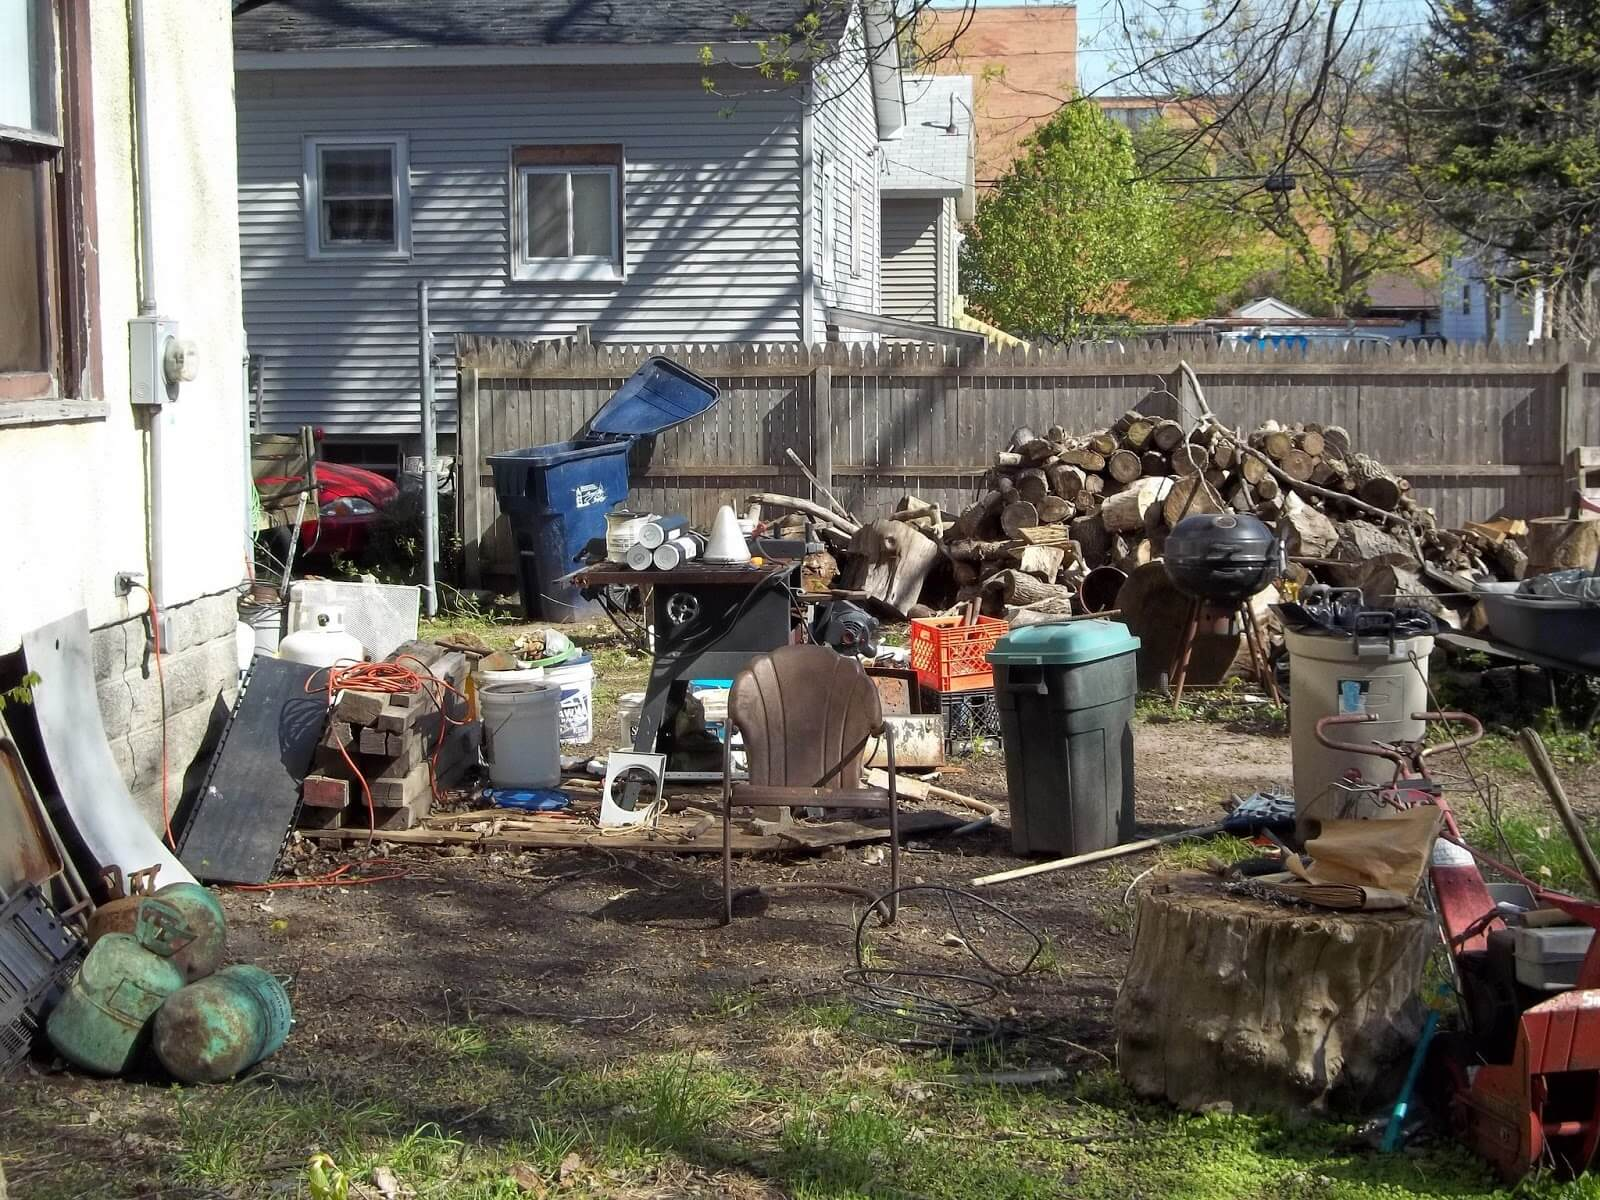 Residential Junk Removal-Bakersfield Dumpster Rental & Junk Removal Services-We Offer Residential and Commercial Dumpster Removal Services, Portable Toilet Services, Dumpster Rentals, Bulk Trash, Demolition Removal, Junk Hauling, Rubbish Removal, Waste Containers, Debris Removal, 20 & 30 Yard Container Rentals, and much more!